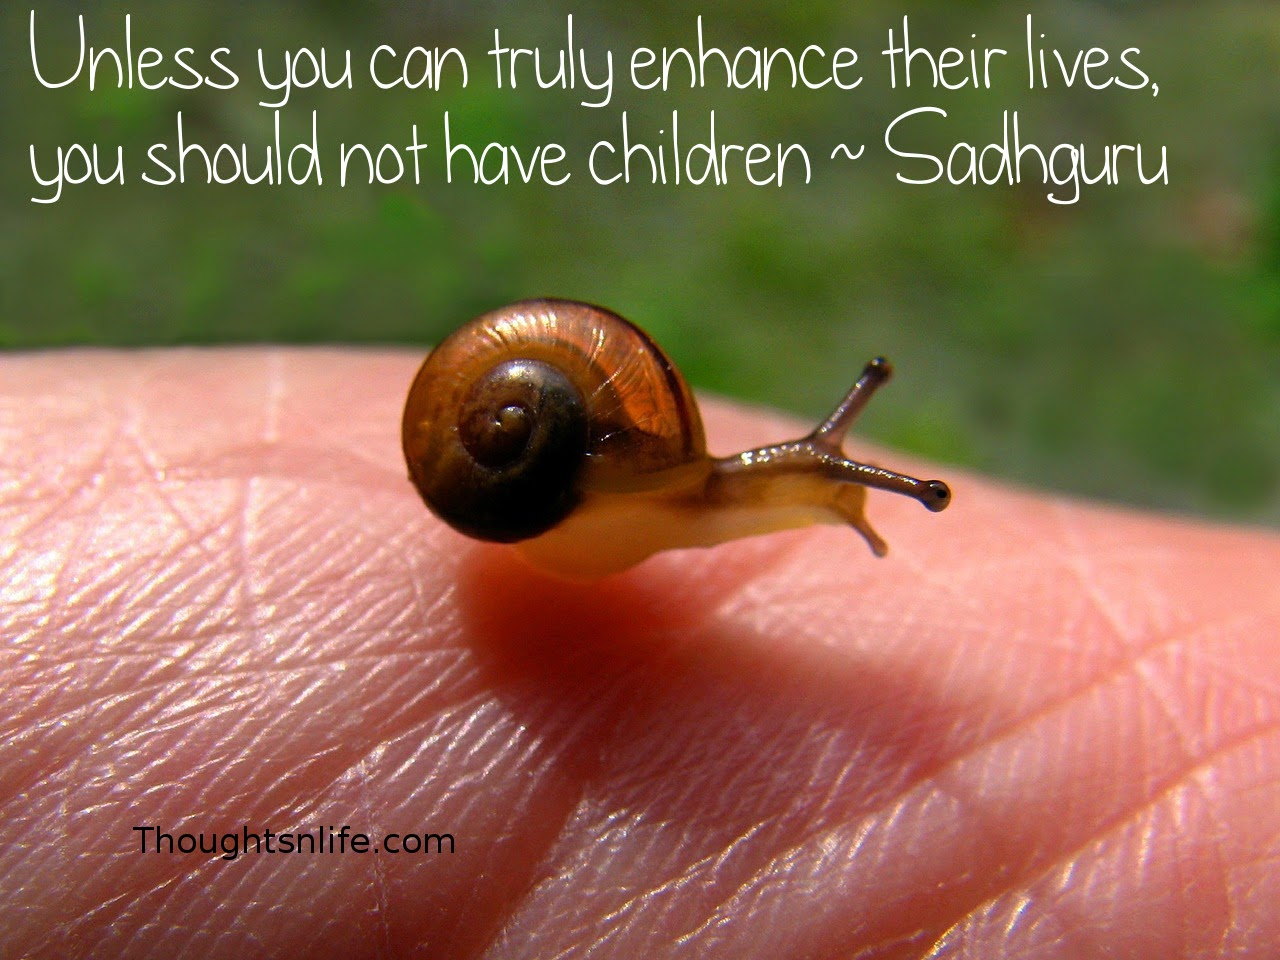 Thoughtsnlife.com: Unless you can truly enhance their lives, you should not have children ~ Sadhguru